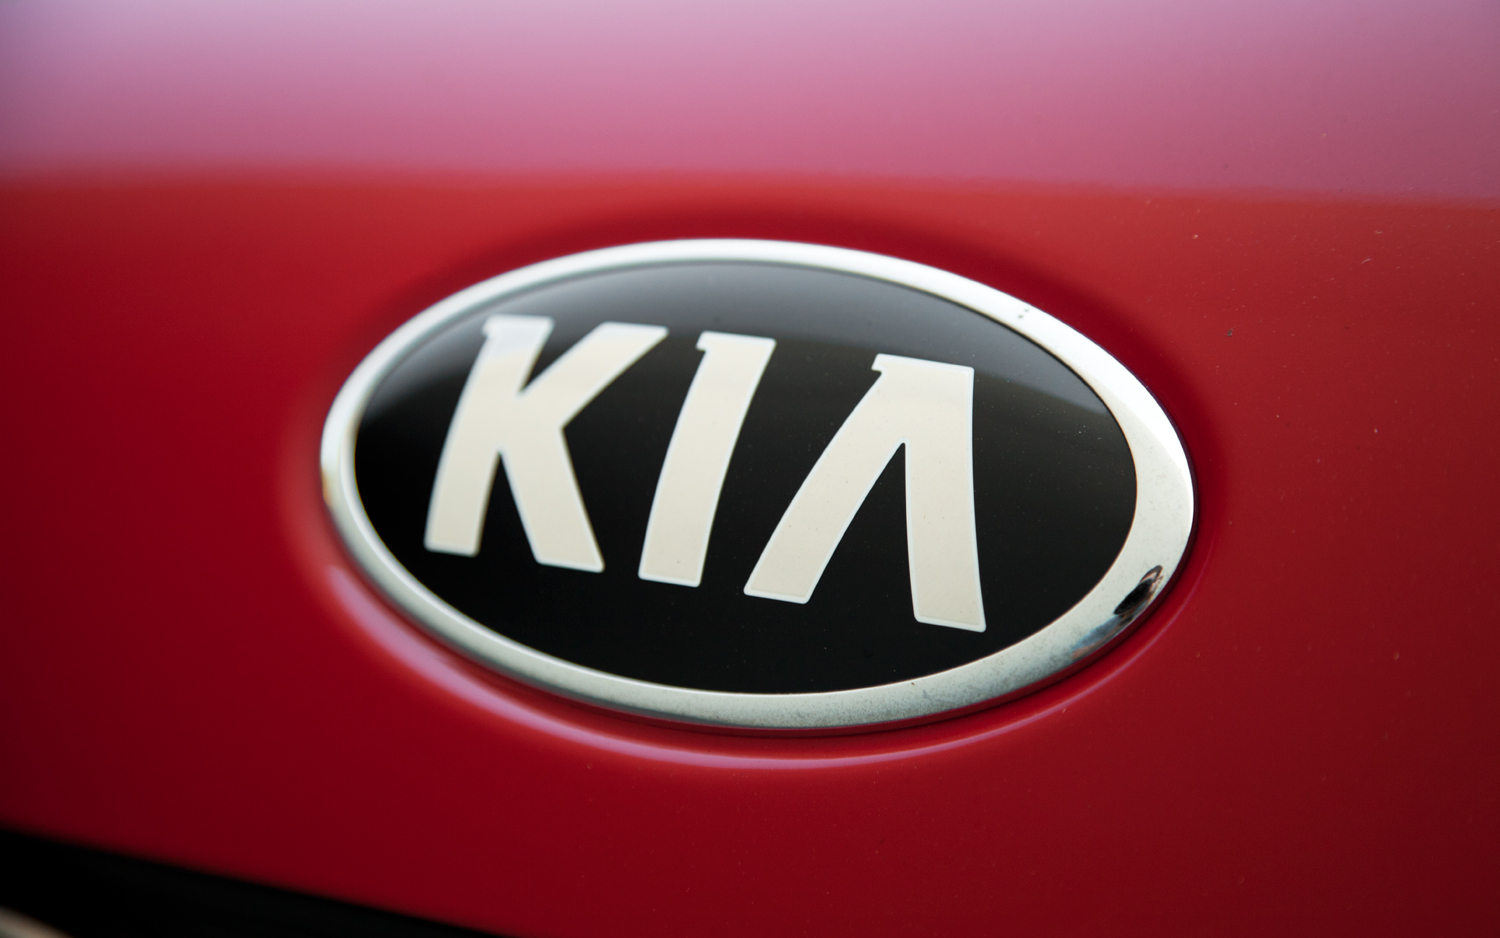 Kia Logo Kia Car Symbol Meaning And History Car Brand